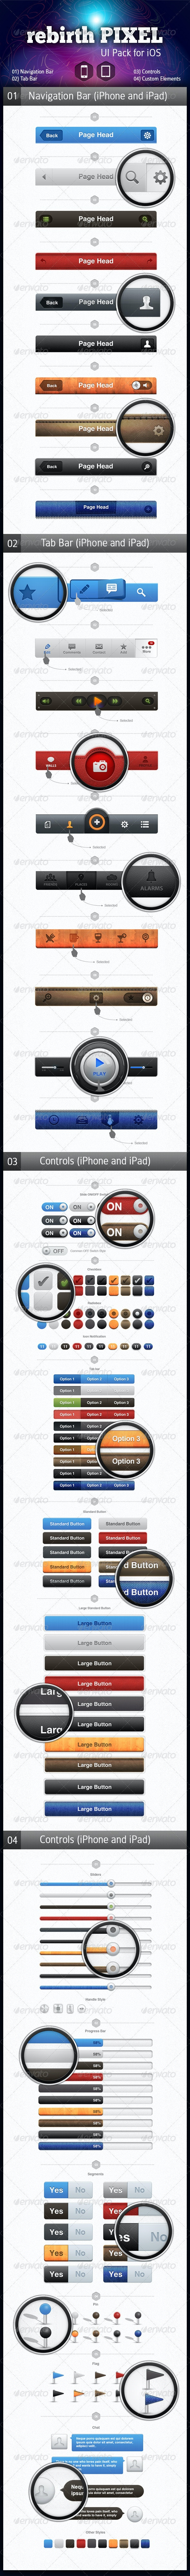 UI Pack for iOS by rebirthPIXEL